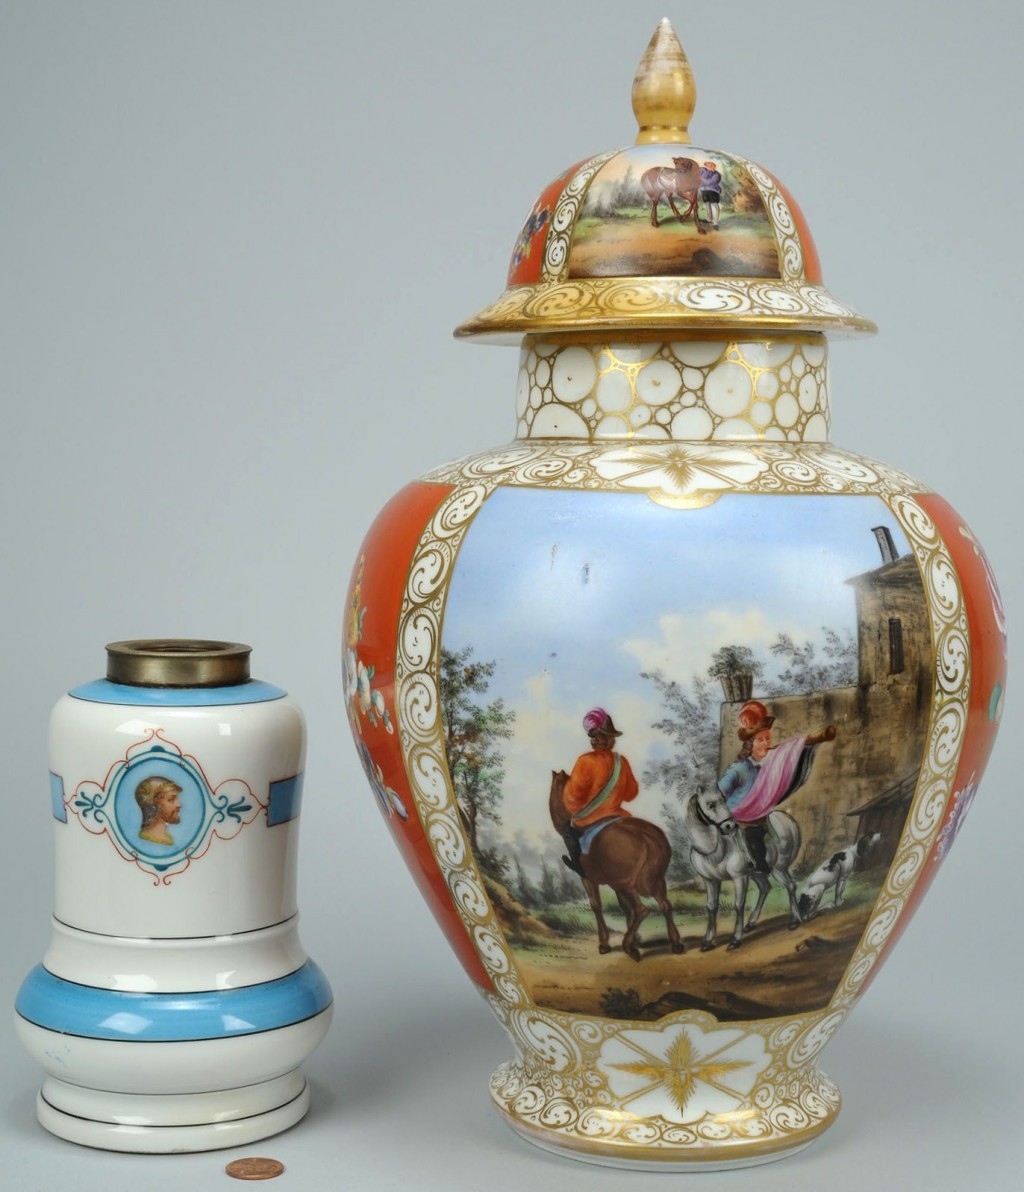 Lot 108: 2 19th Century European Porcelain Items, H. Wolfso